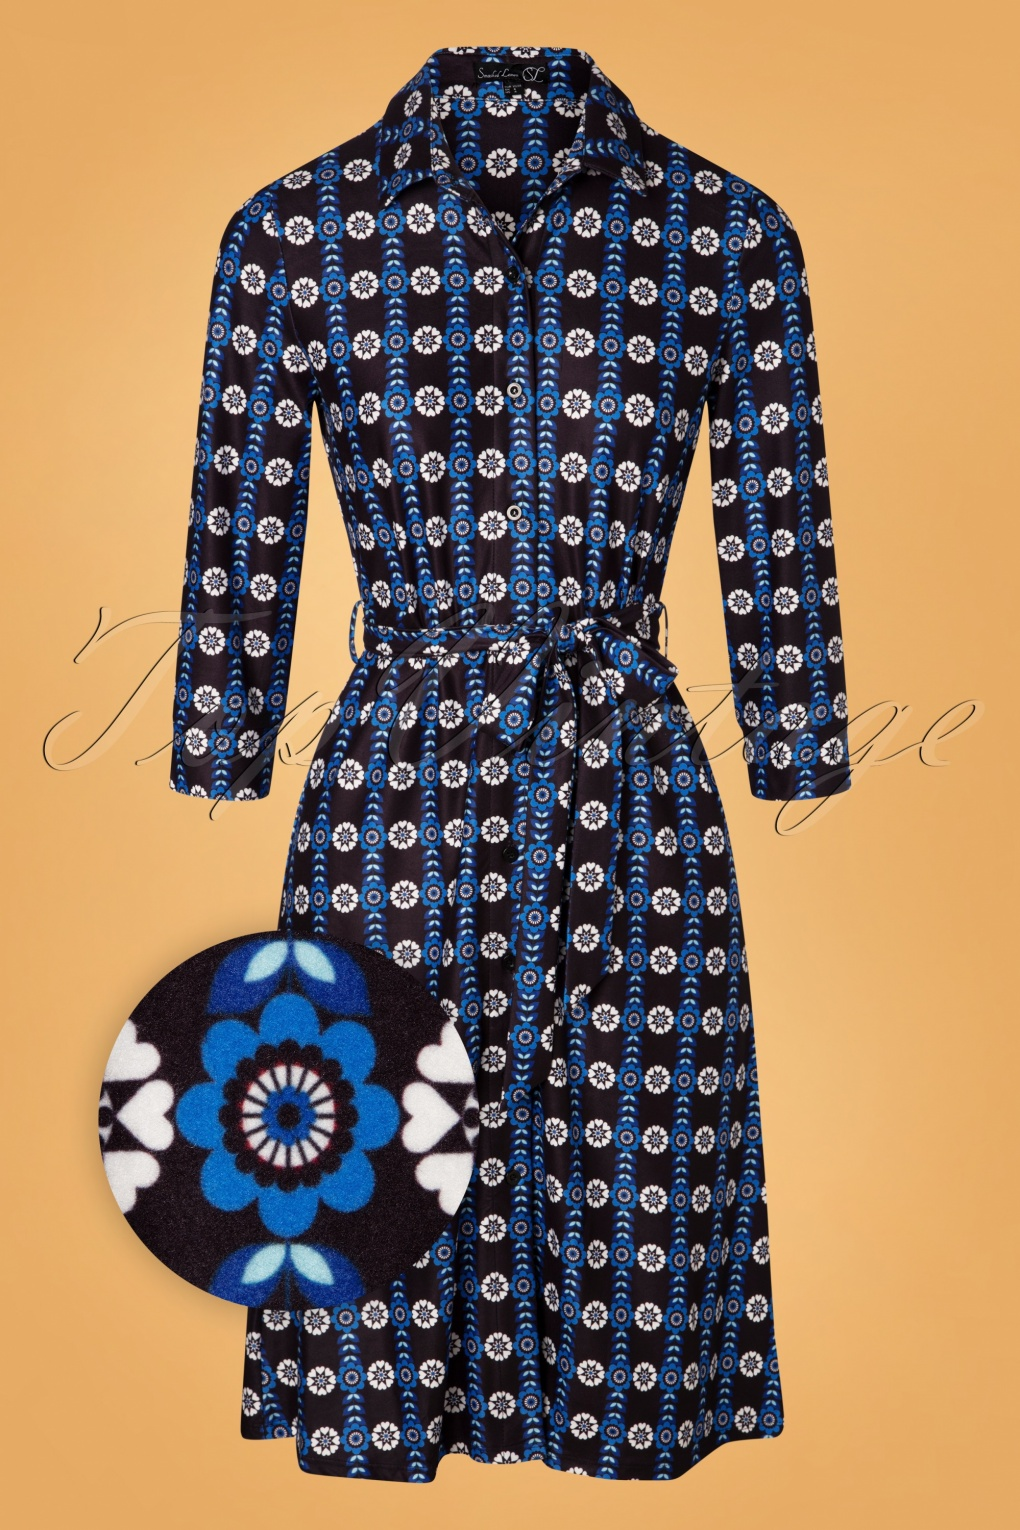 Vintage Style Dresses | Vintage Inspired Dresses 60s Cara Floral  A-Line Dress in Black and Blue £62.18 AT vintagedancer.com